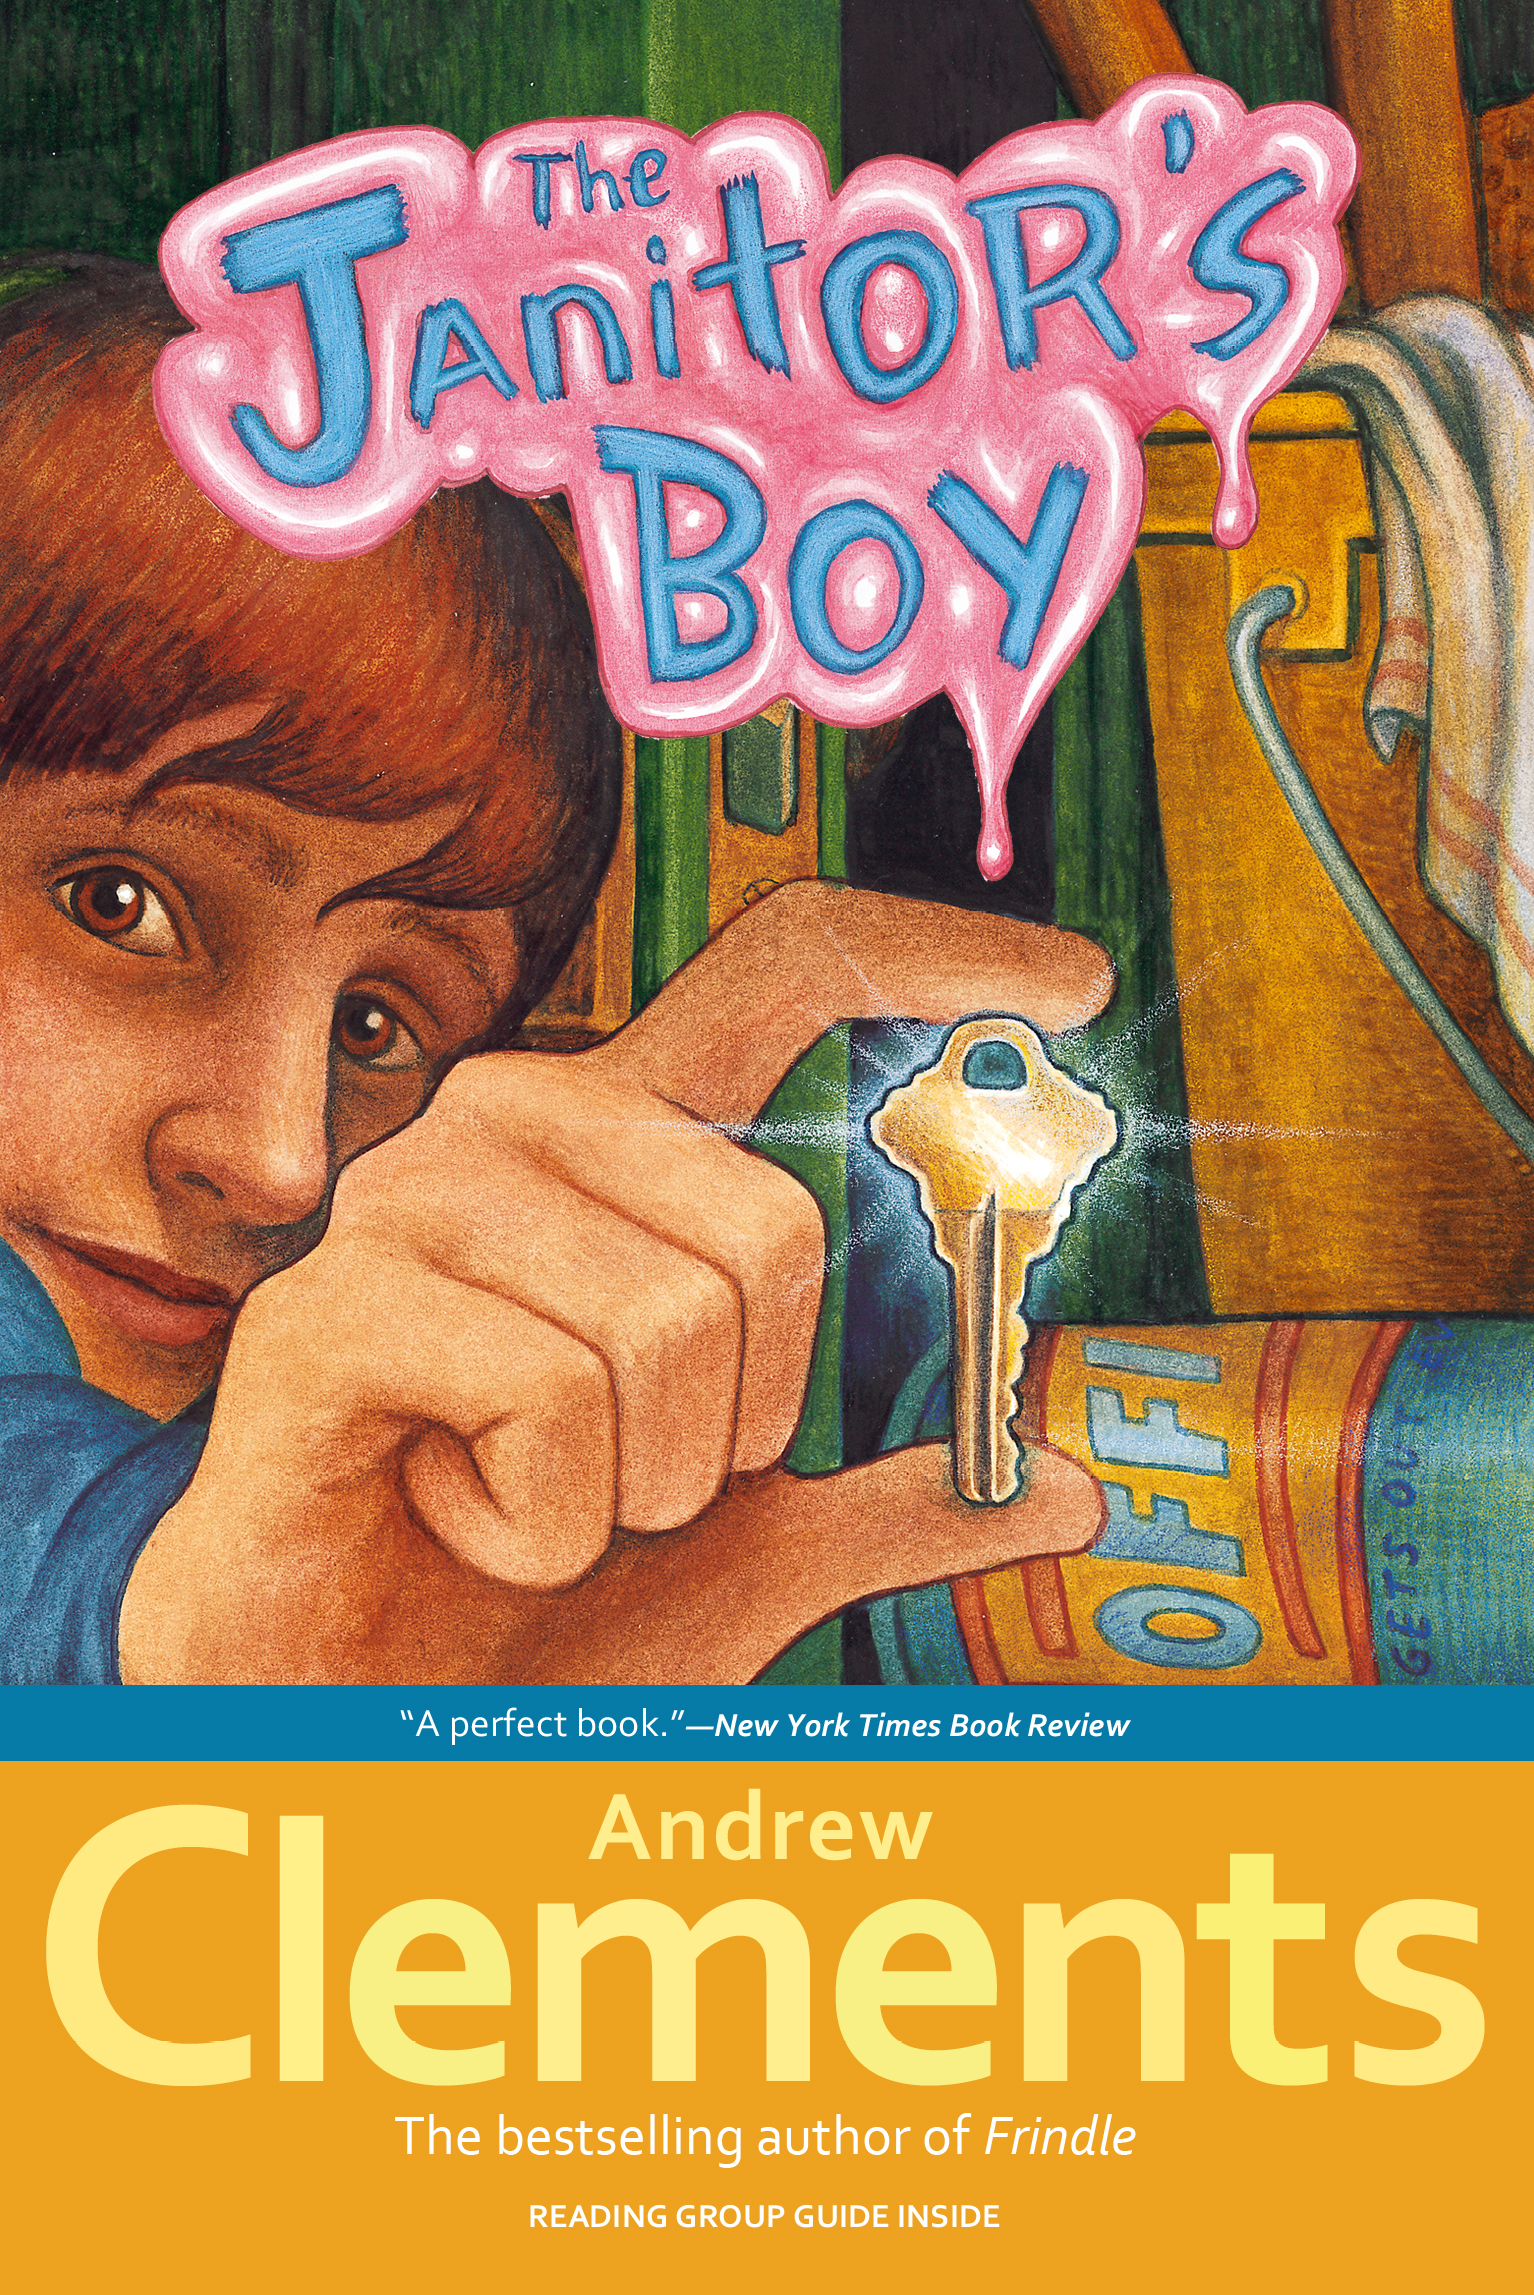 Book Cover Image (jpg): The Janitor's Boy